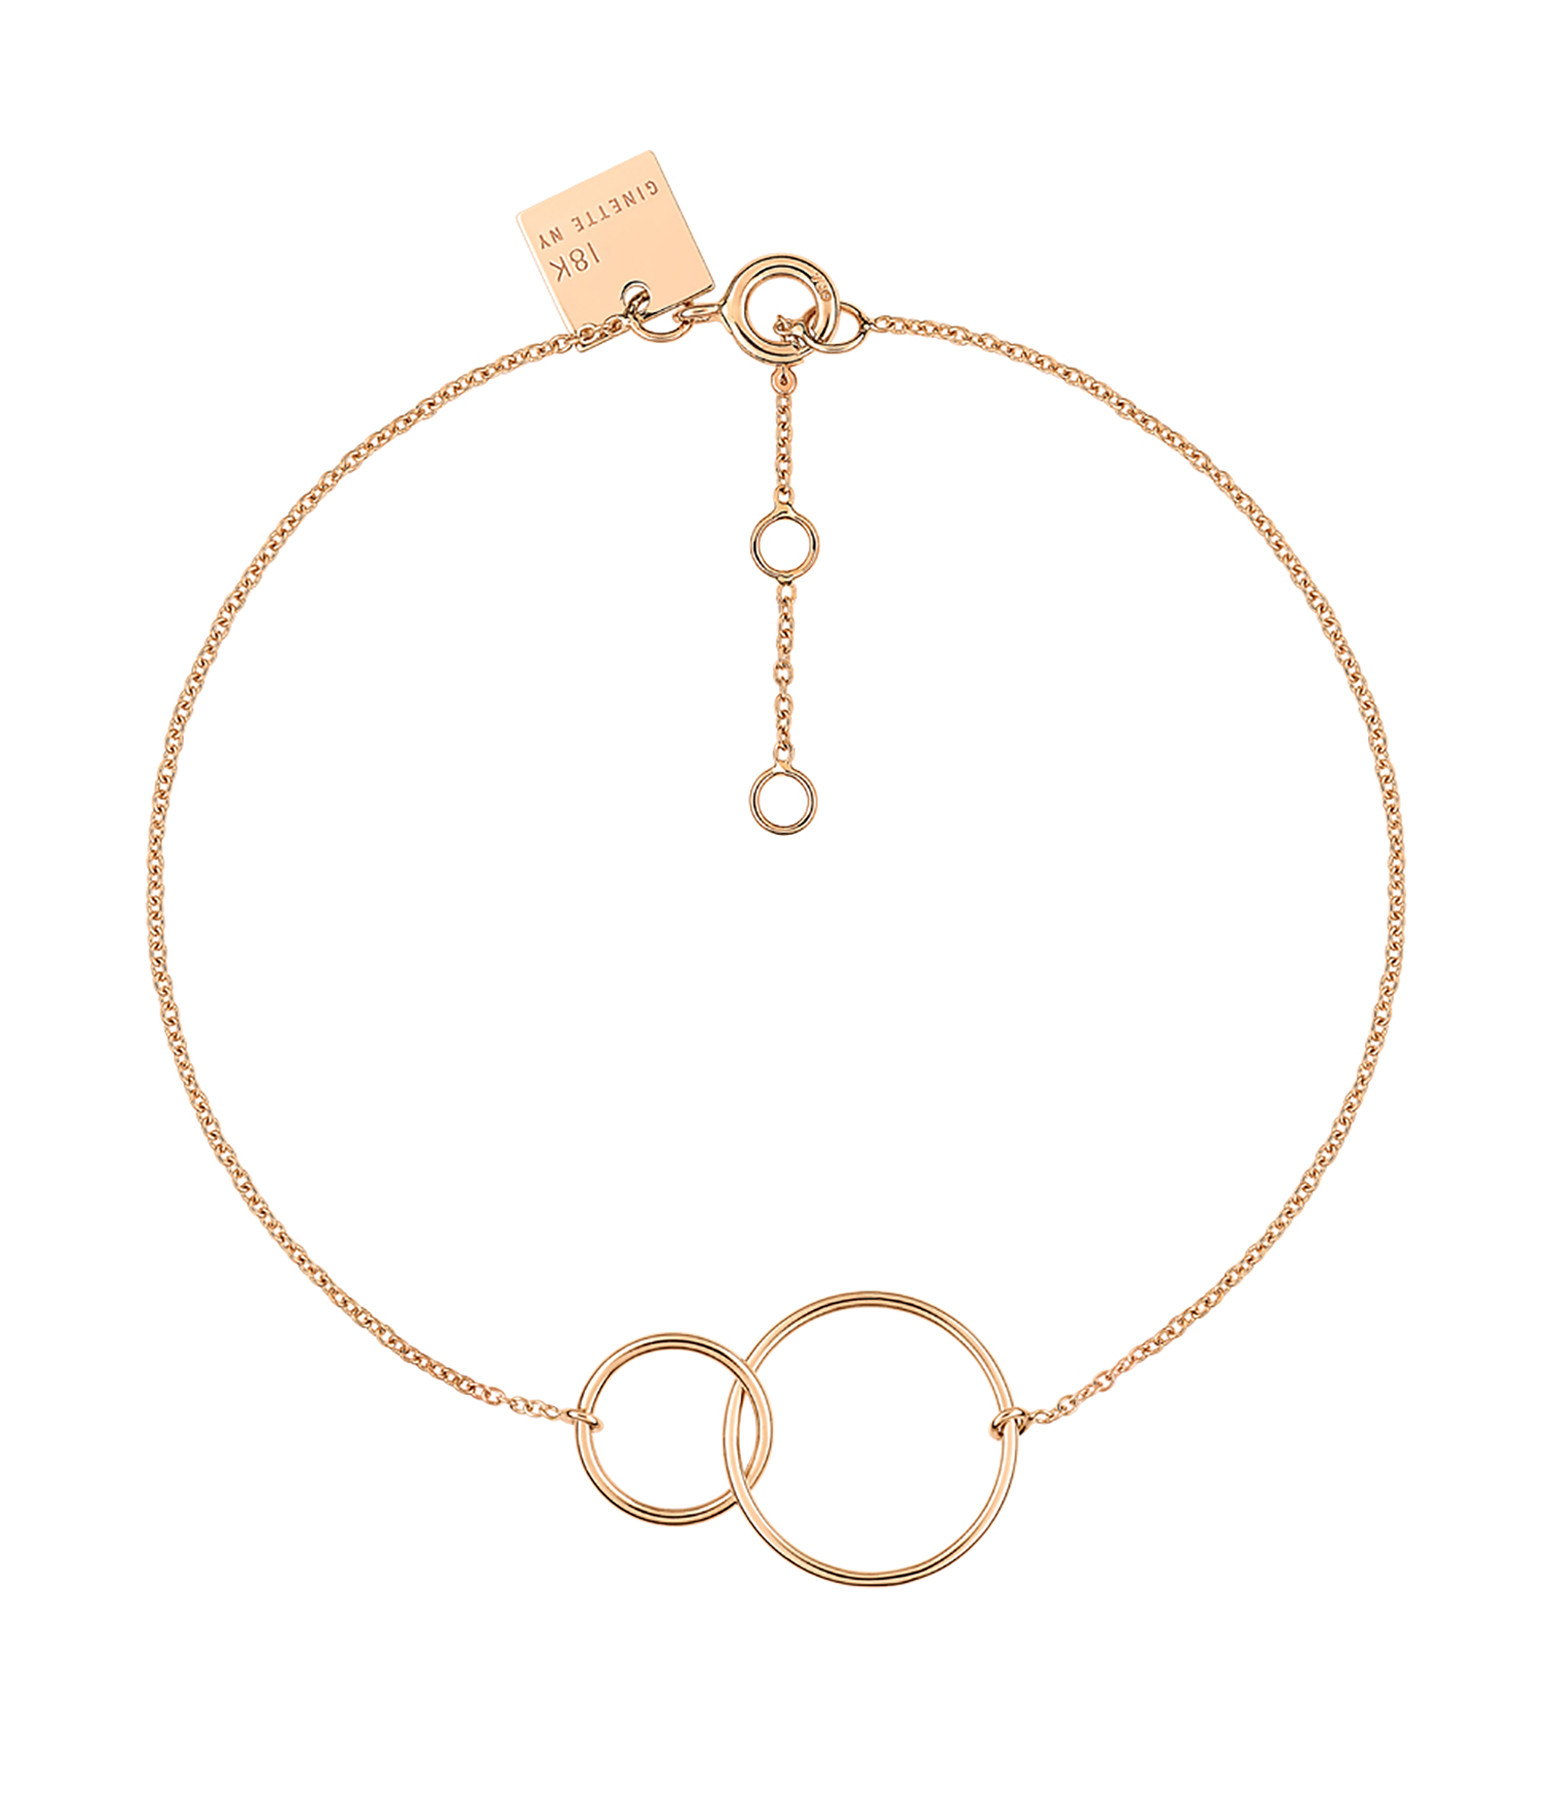 GINETTE NY - Bracelet Tiny Fusion Or Rose